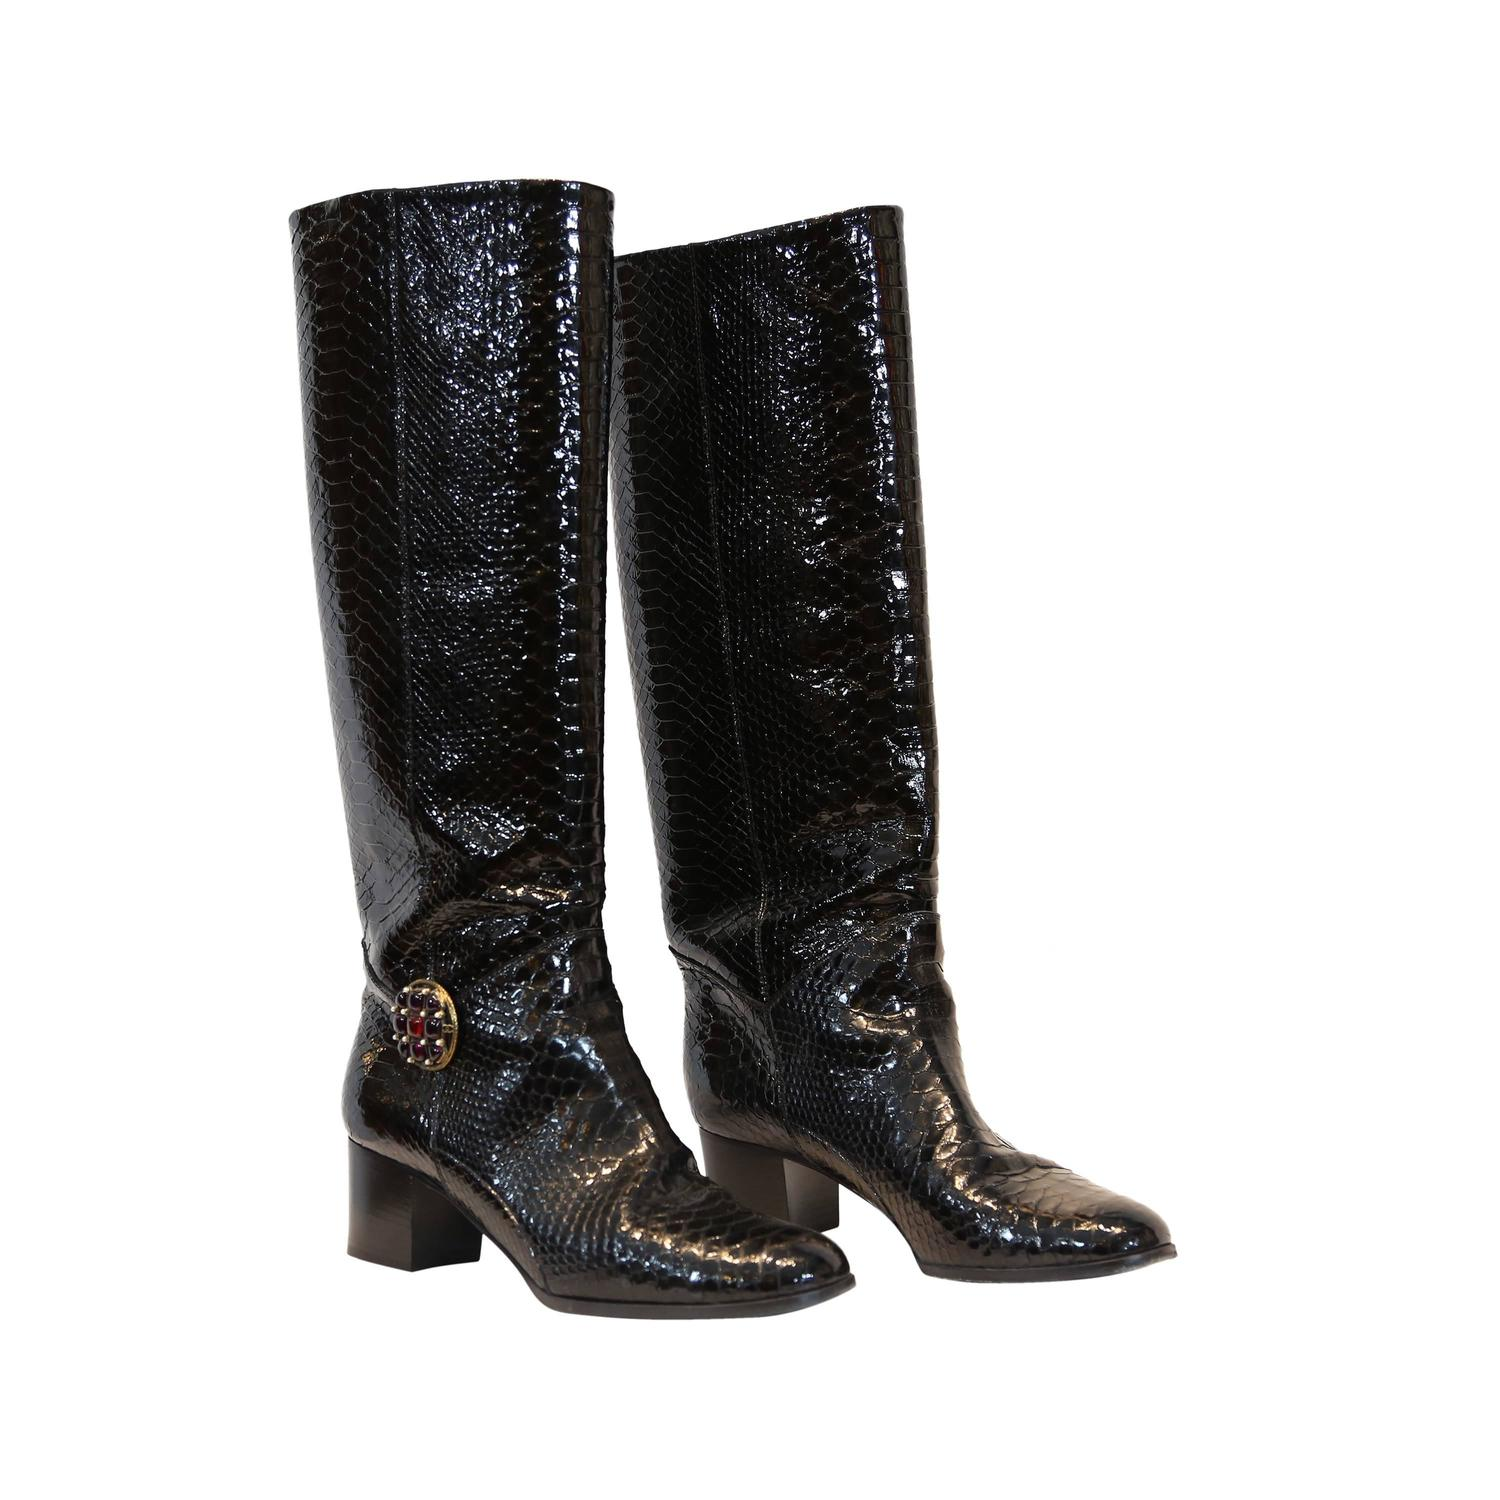 chanel black python embossed patent leather boots at 1stdibs